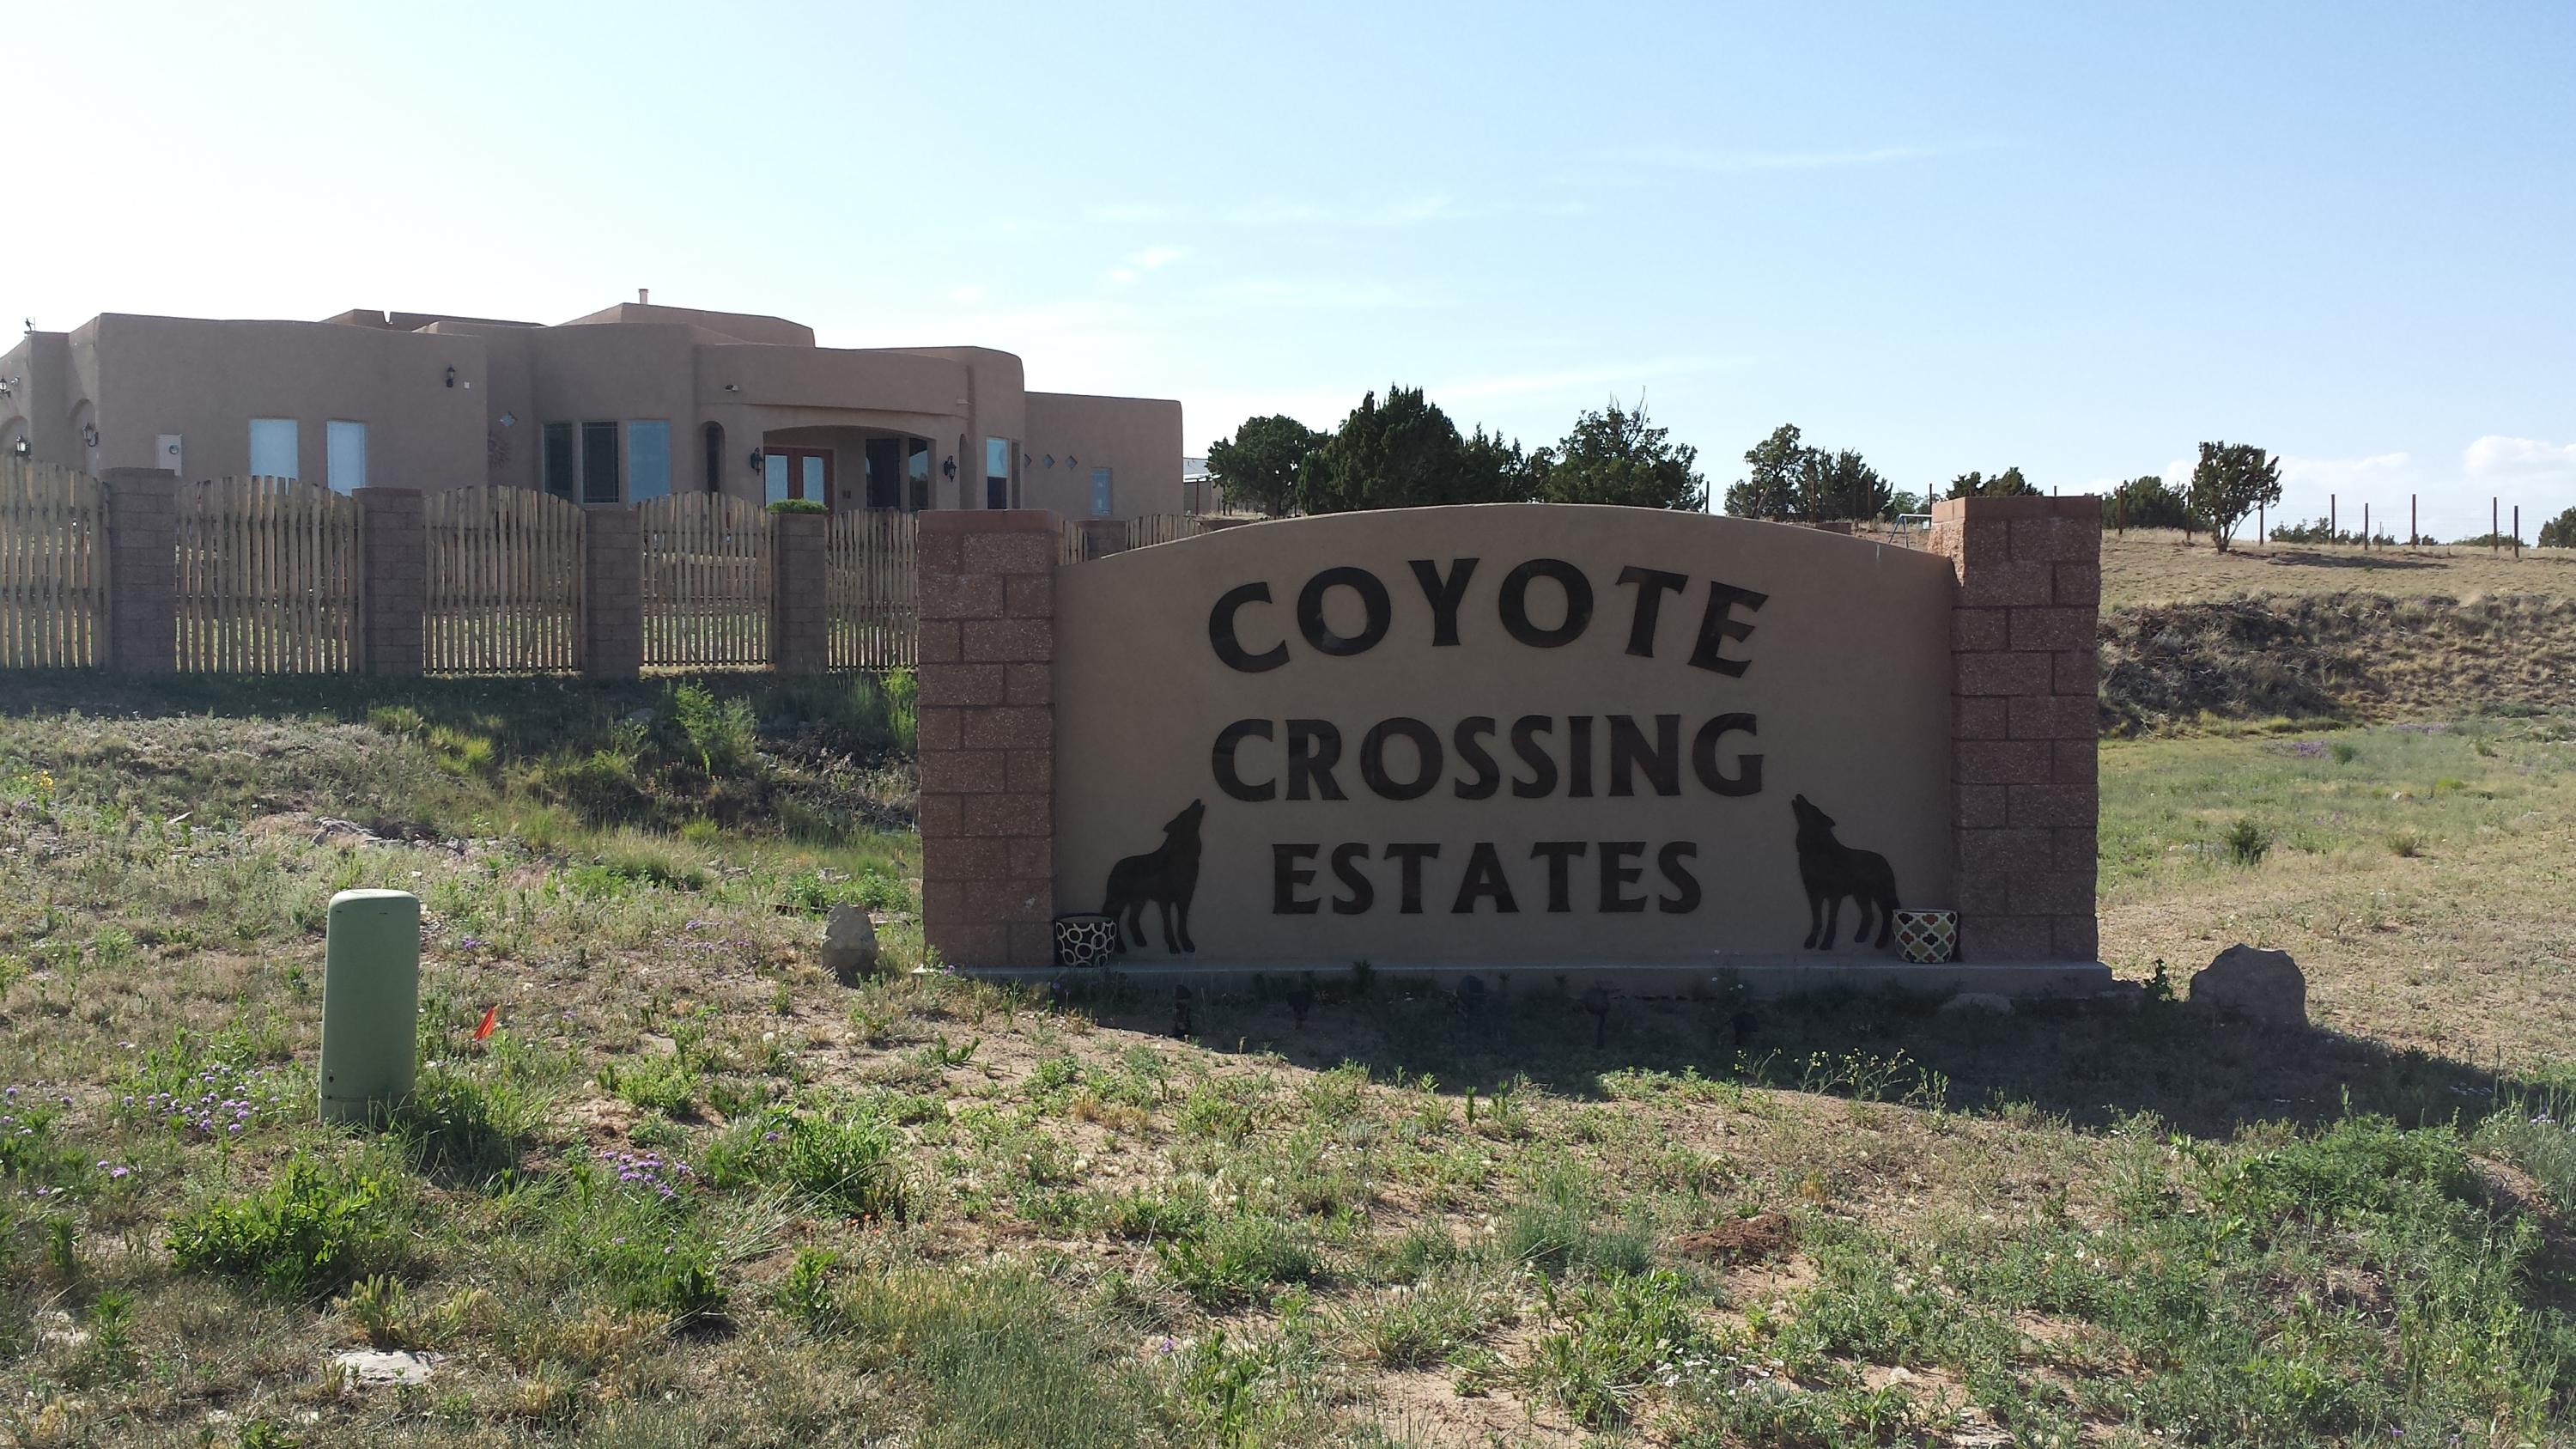 34 Camino Coyote, Edgewood, NM 87015 - Edgewood, NM real estate listing